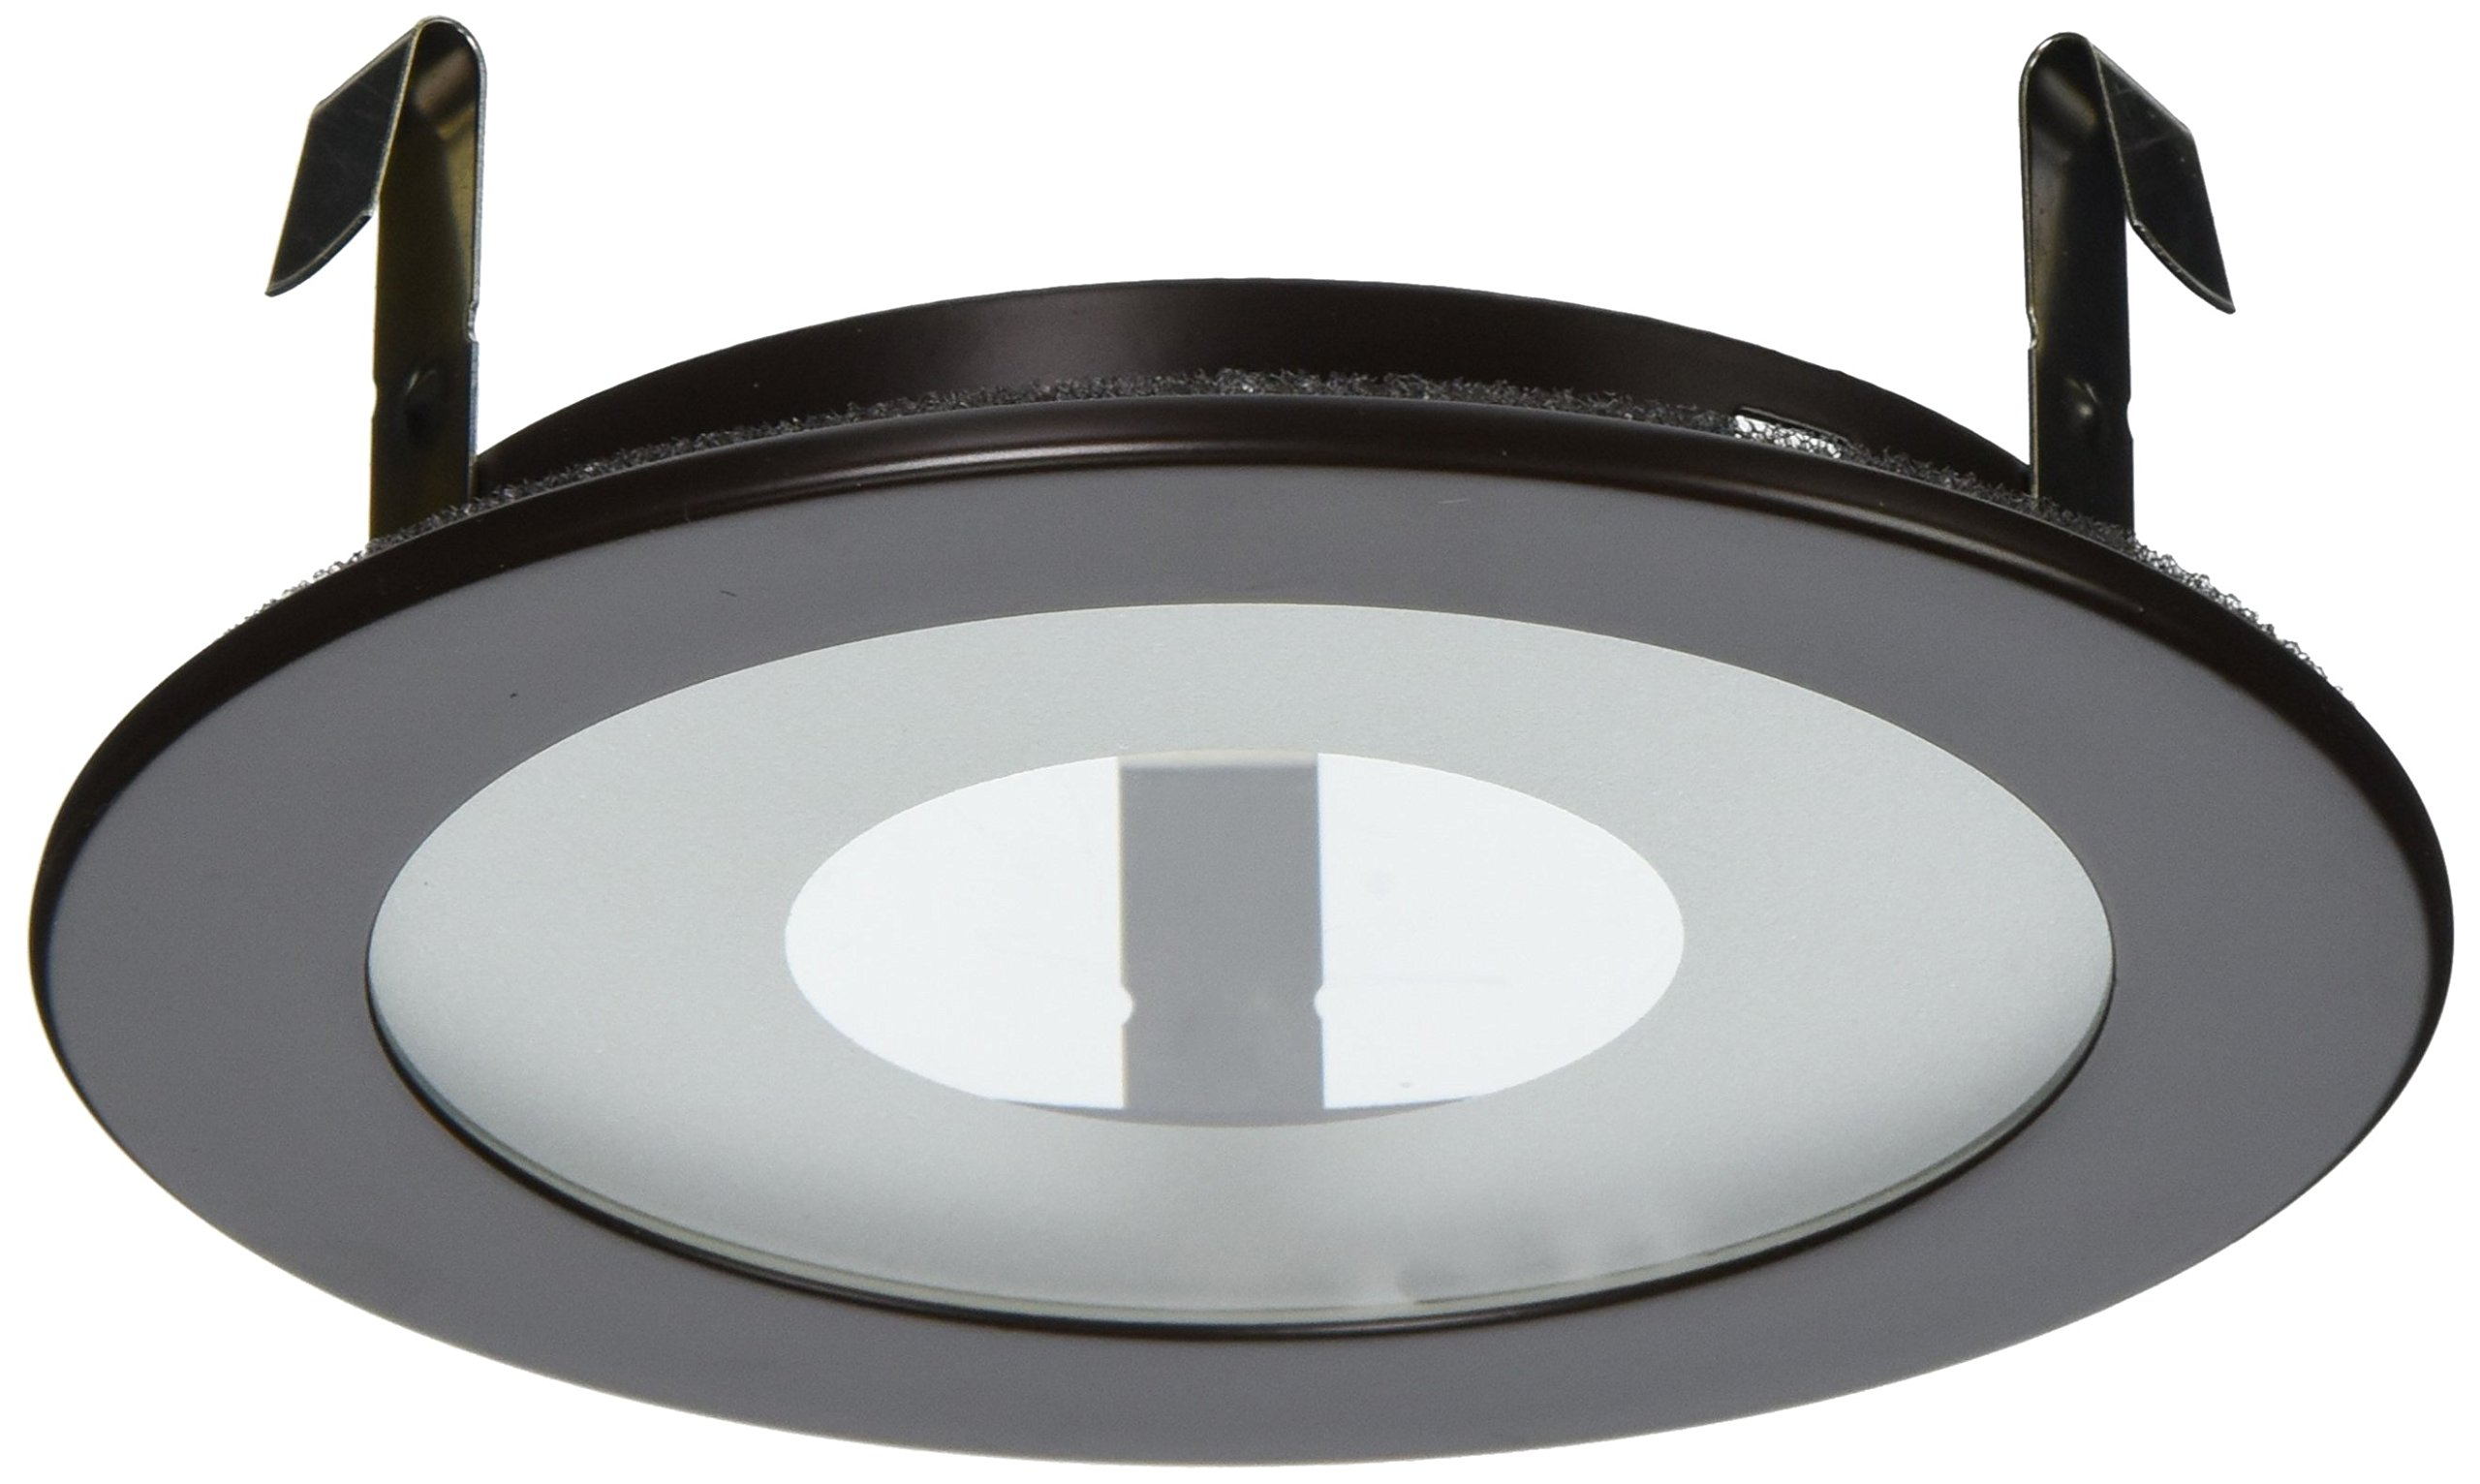 "Elco Lighting EL915BZ 4"" Shower Trim with Frosted Pinhole Glass - EL915 by Elco Lighting (Image #1)"